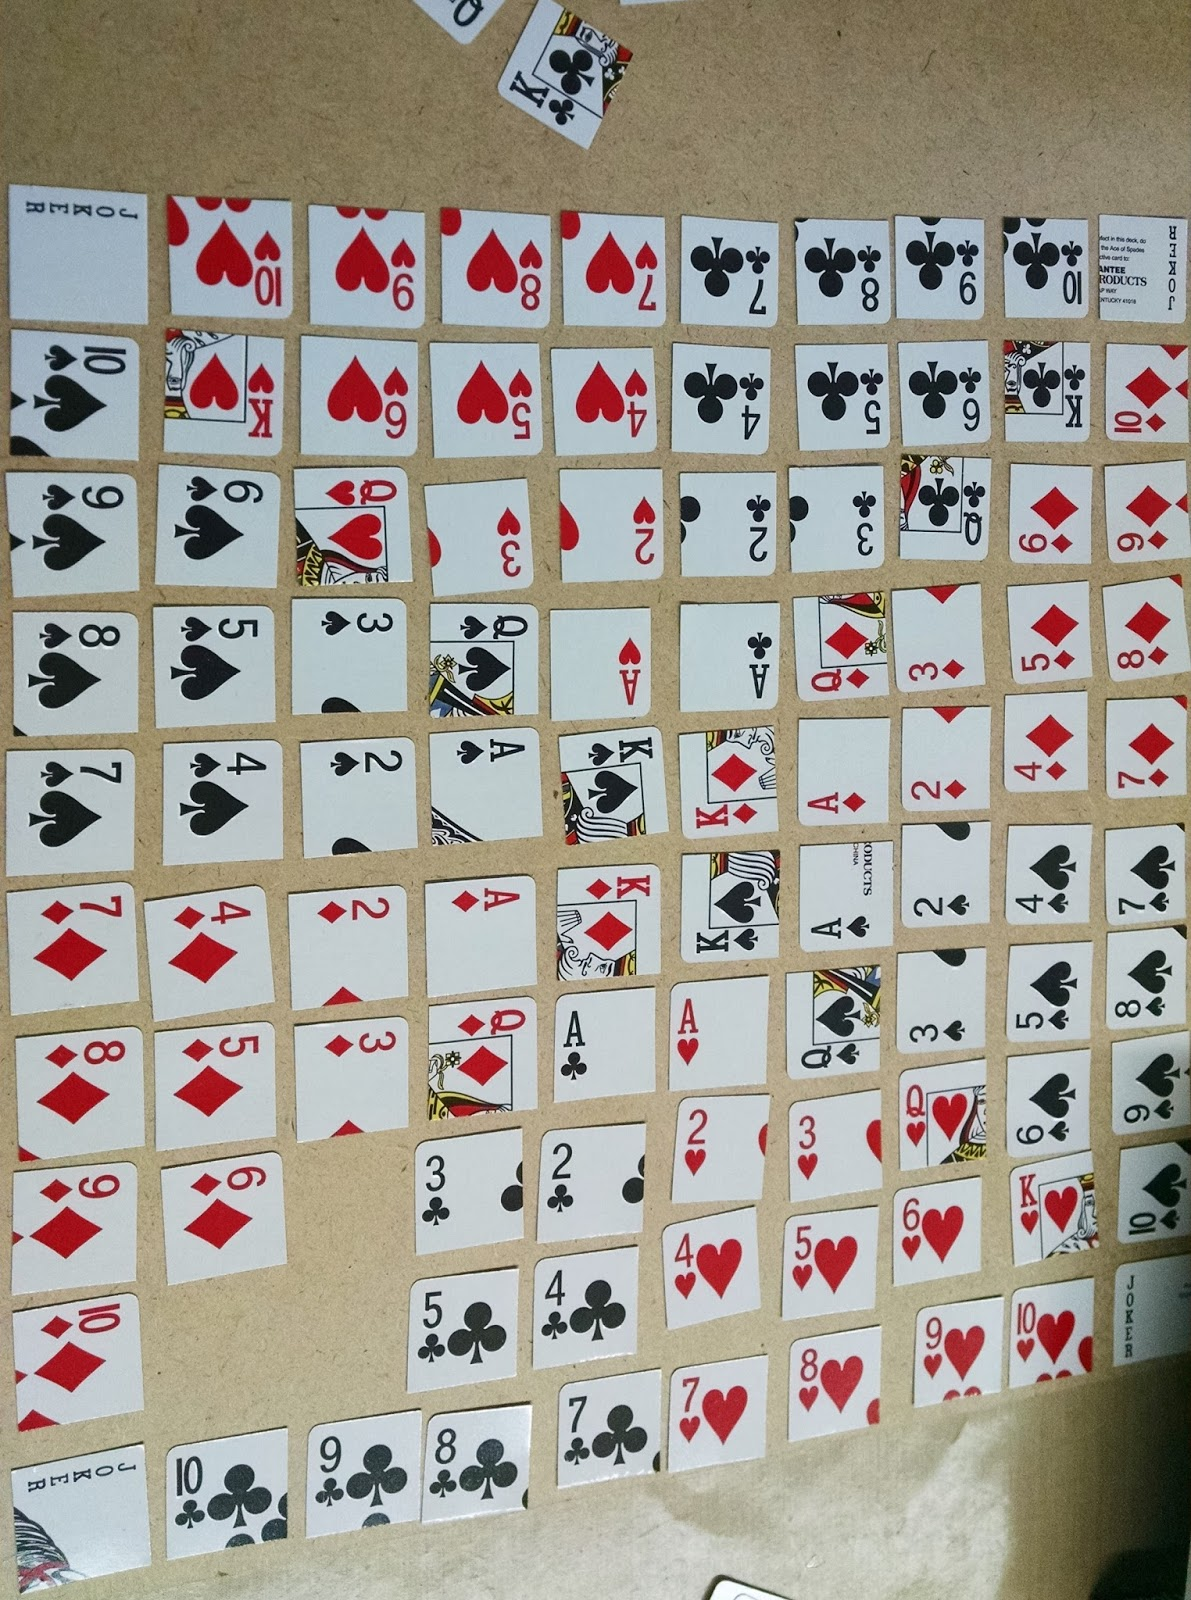 sequence card game instructions